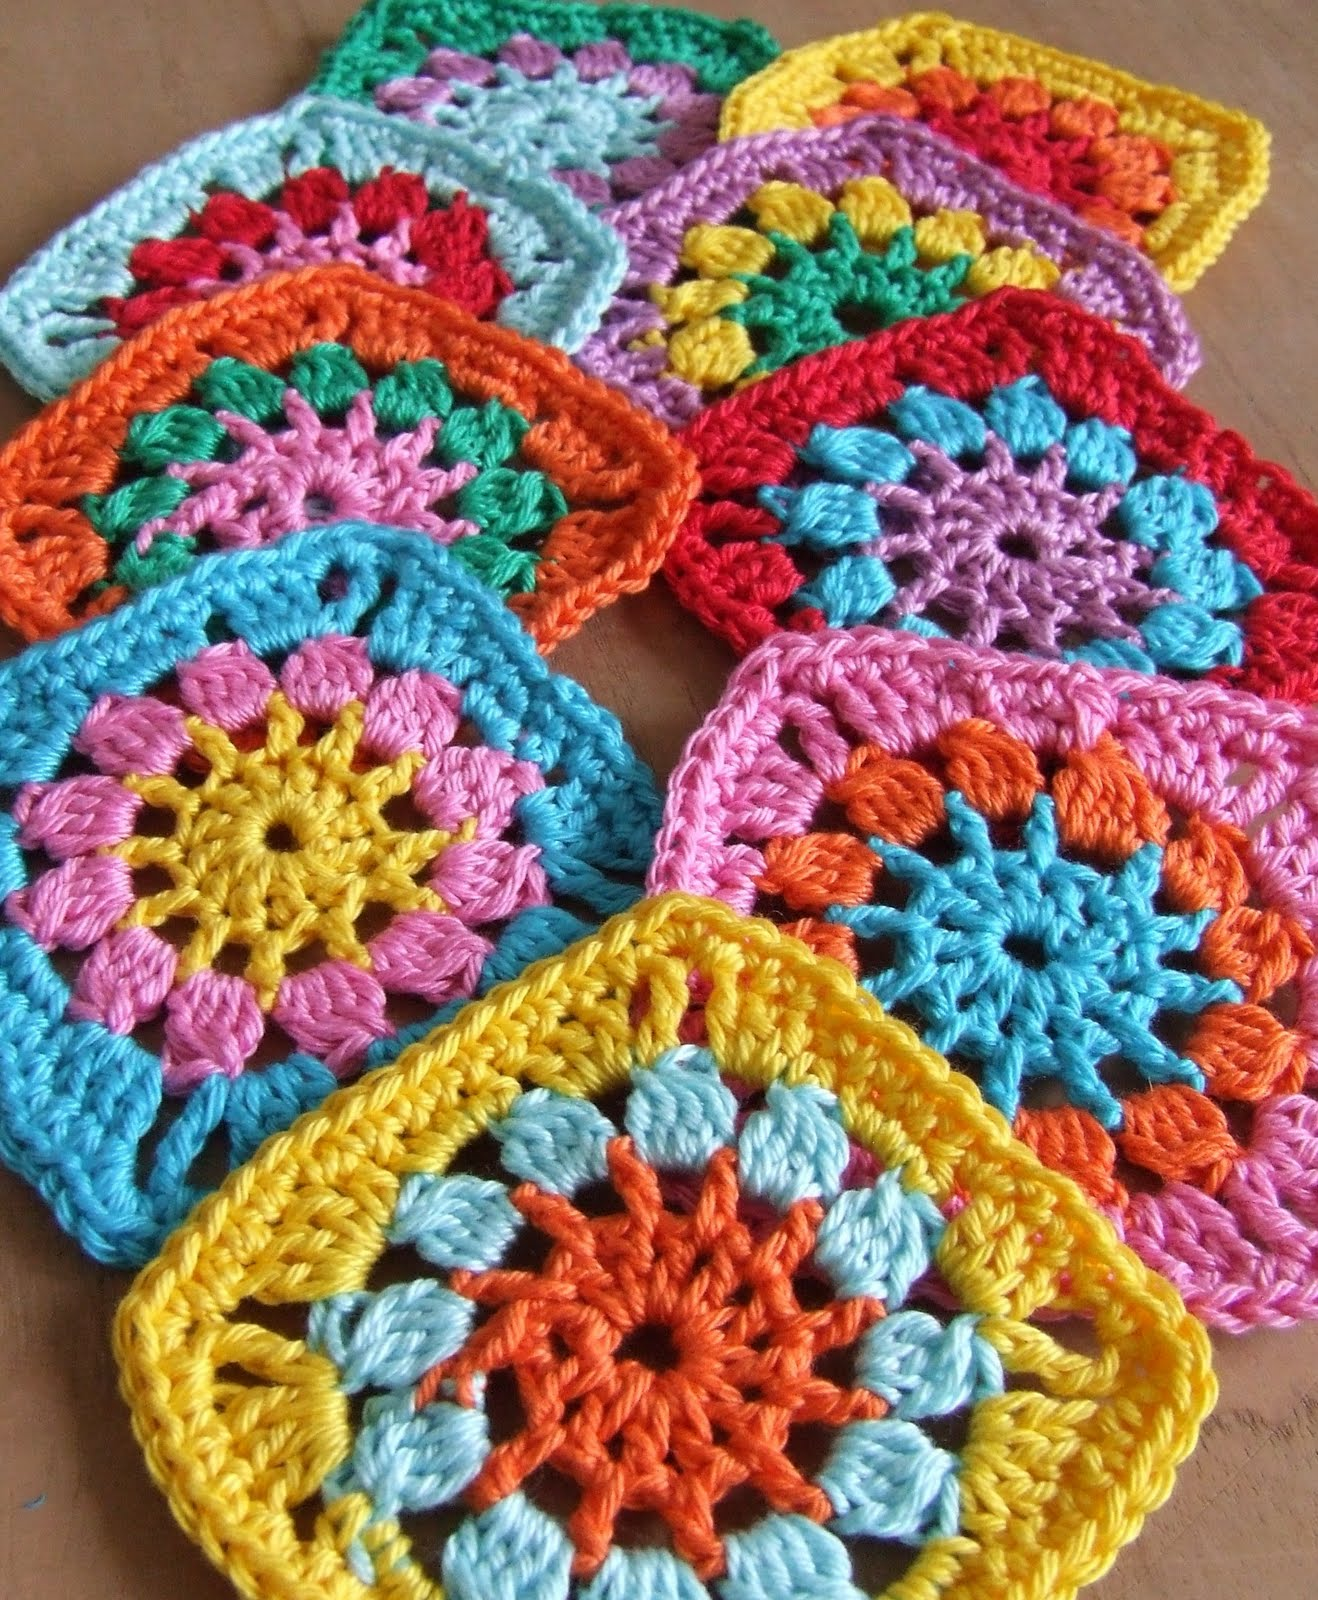 Crochet Granny Square Pattern : lined granny square baby blanket crochet pattern crochet patterns ...